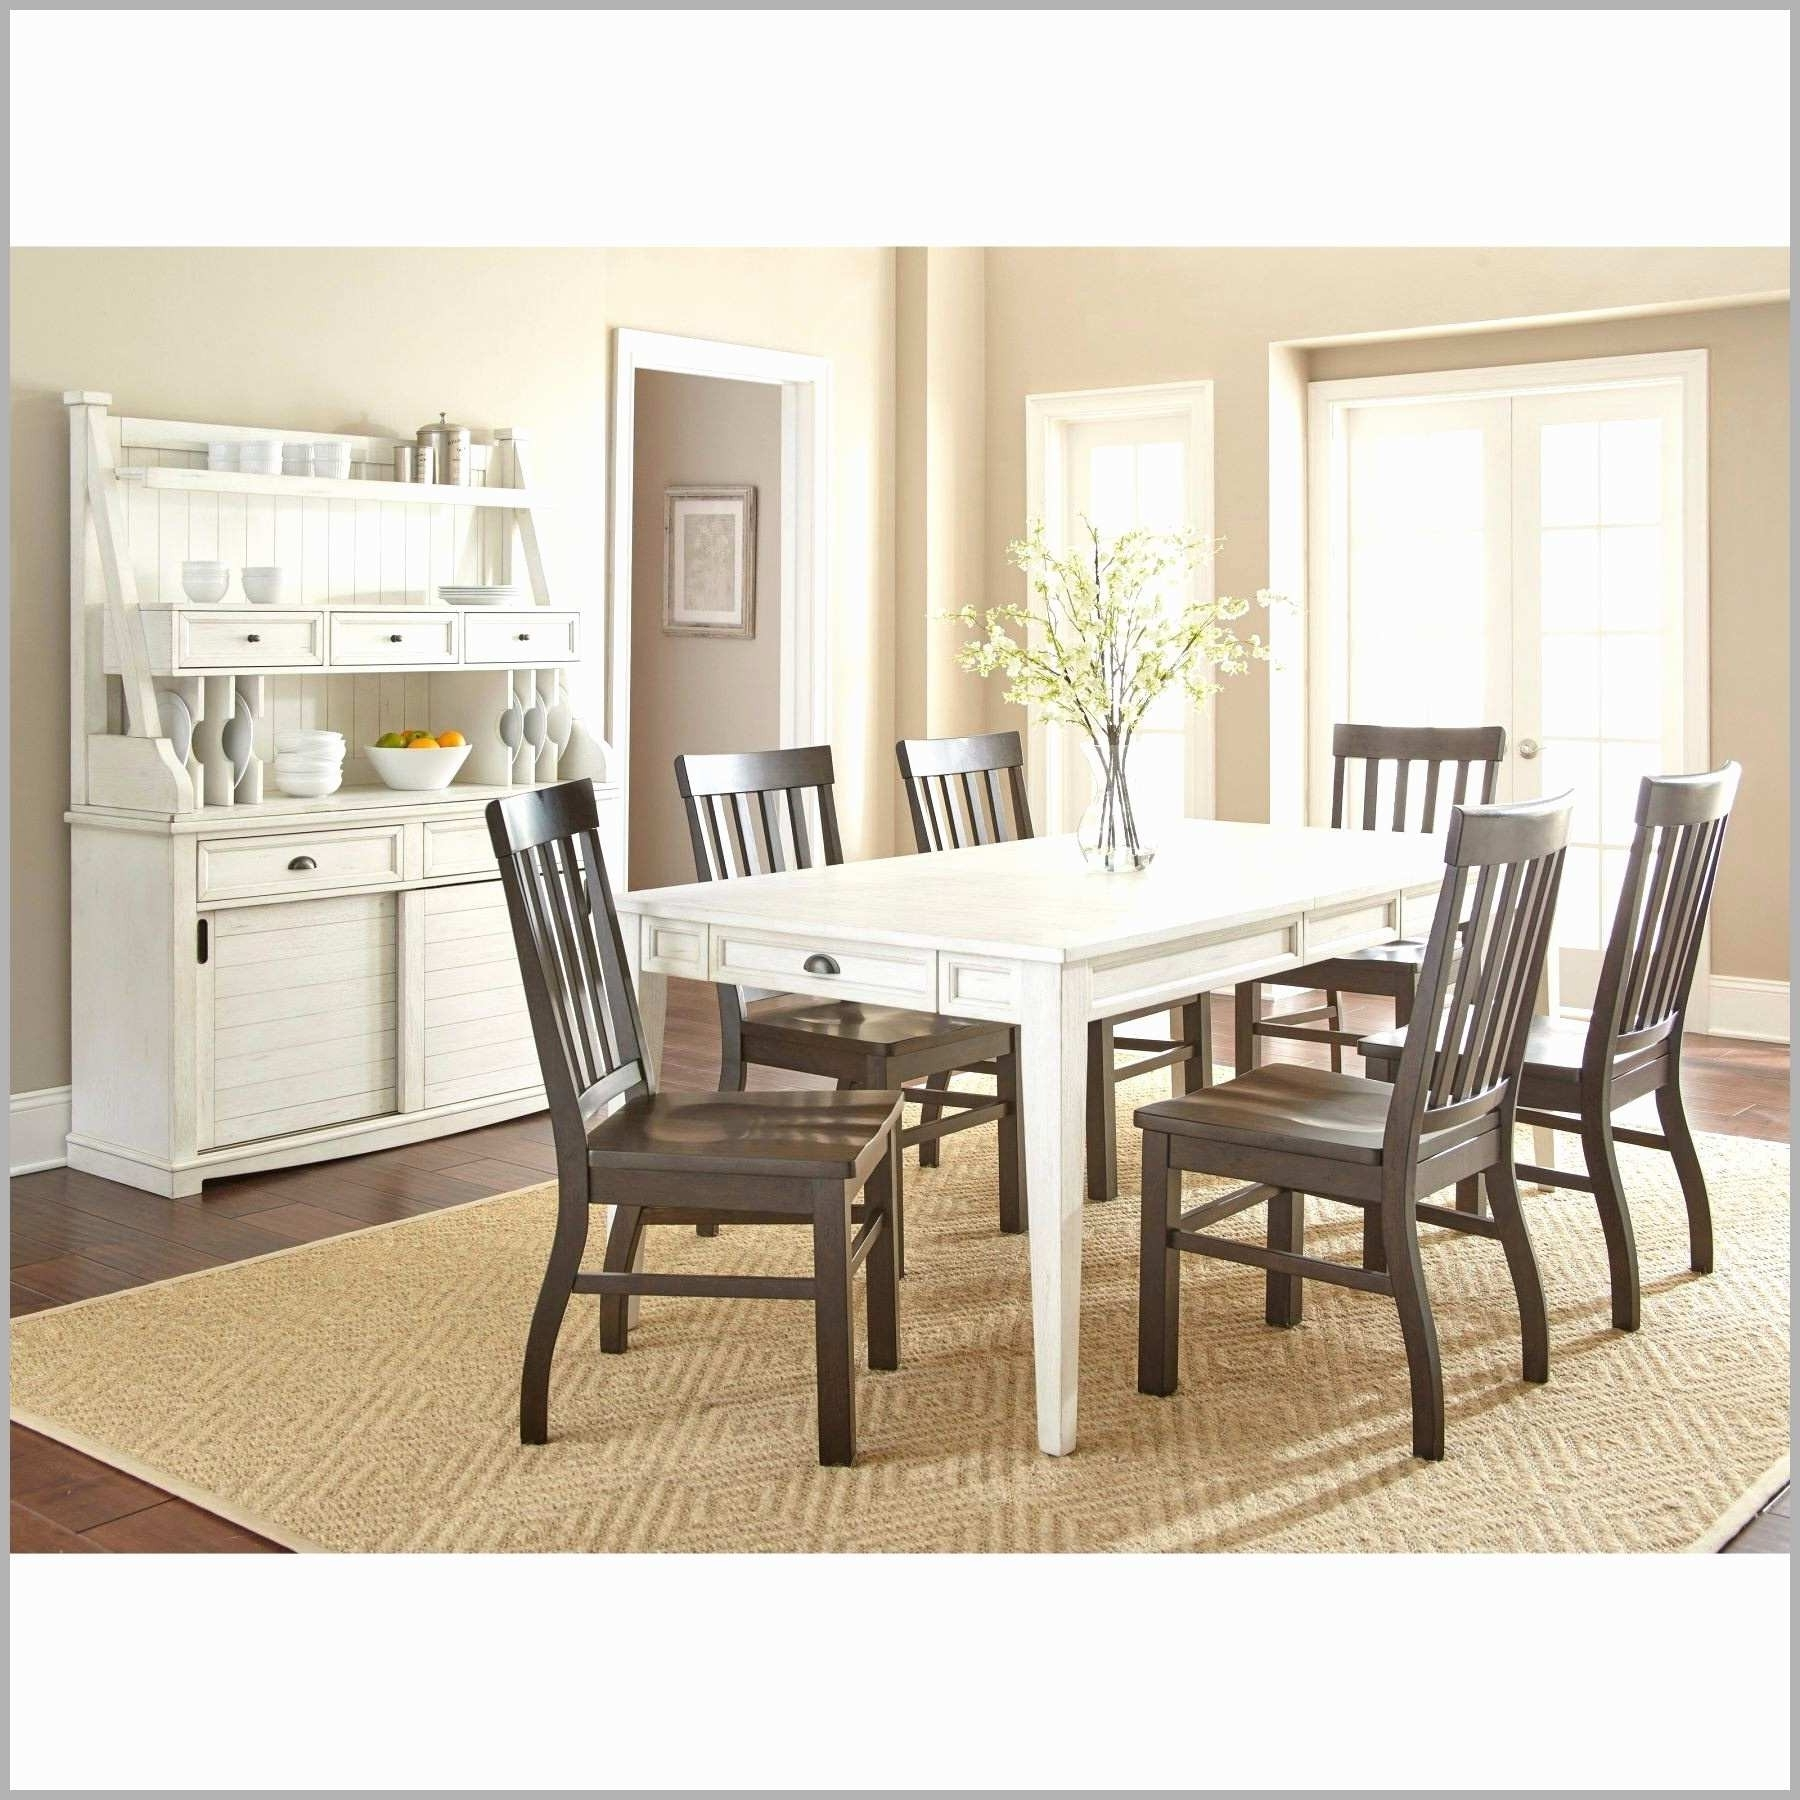 Most Recently Released Dining Tables Lighting Intended For Wooden Dining Room Table New Square Dining Tables For Sale Petite (View 25 of 25)